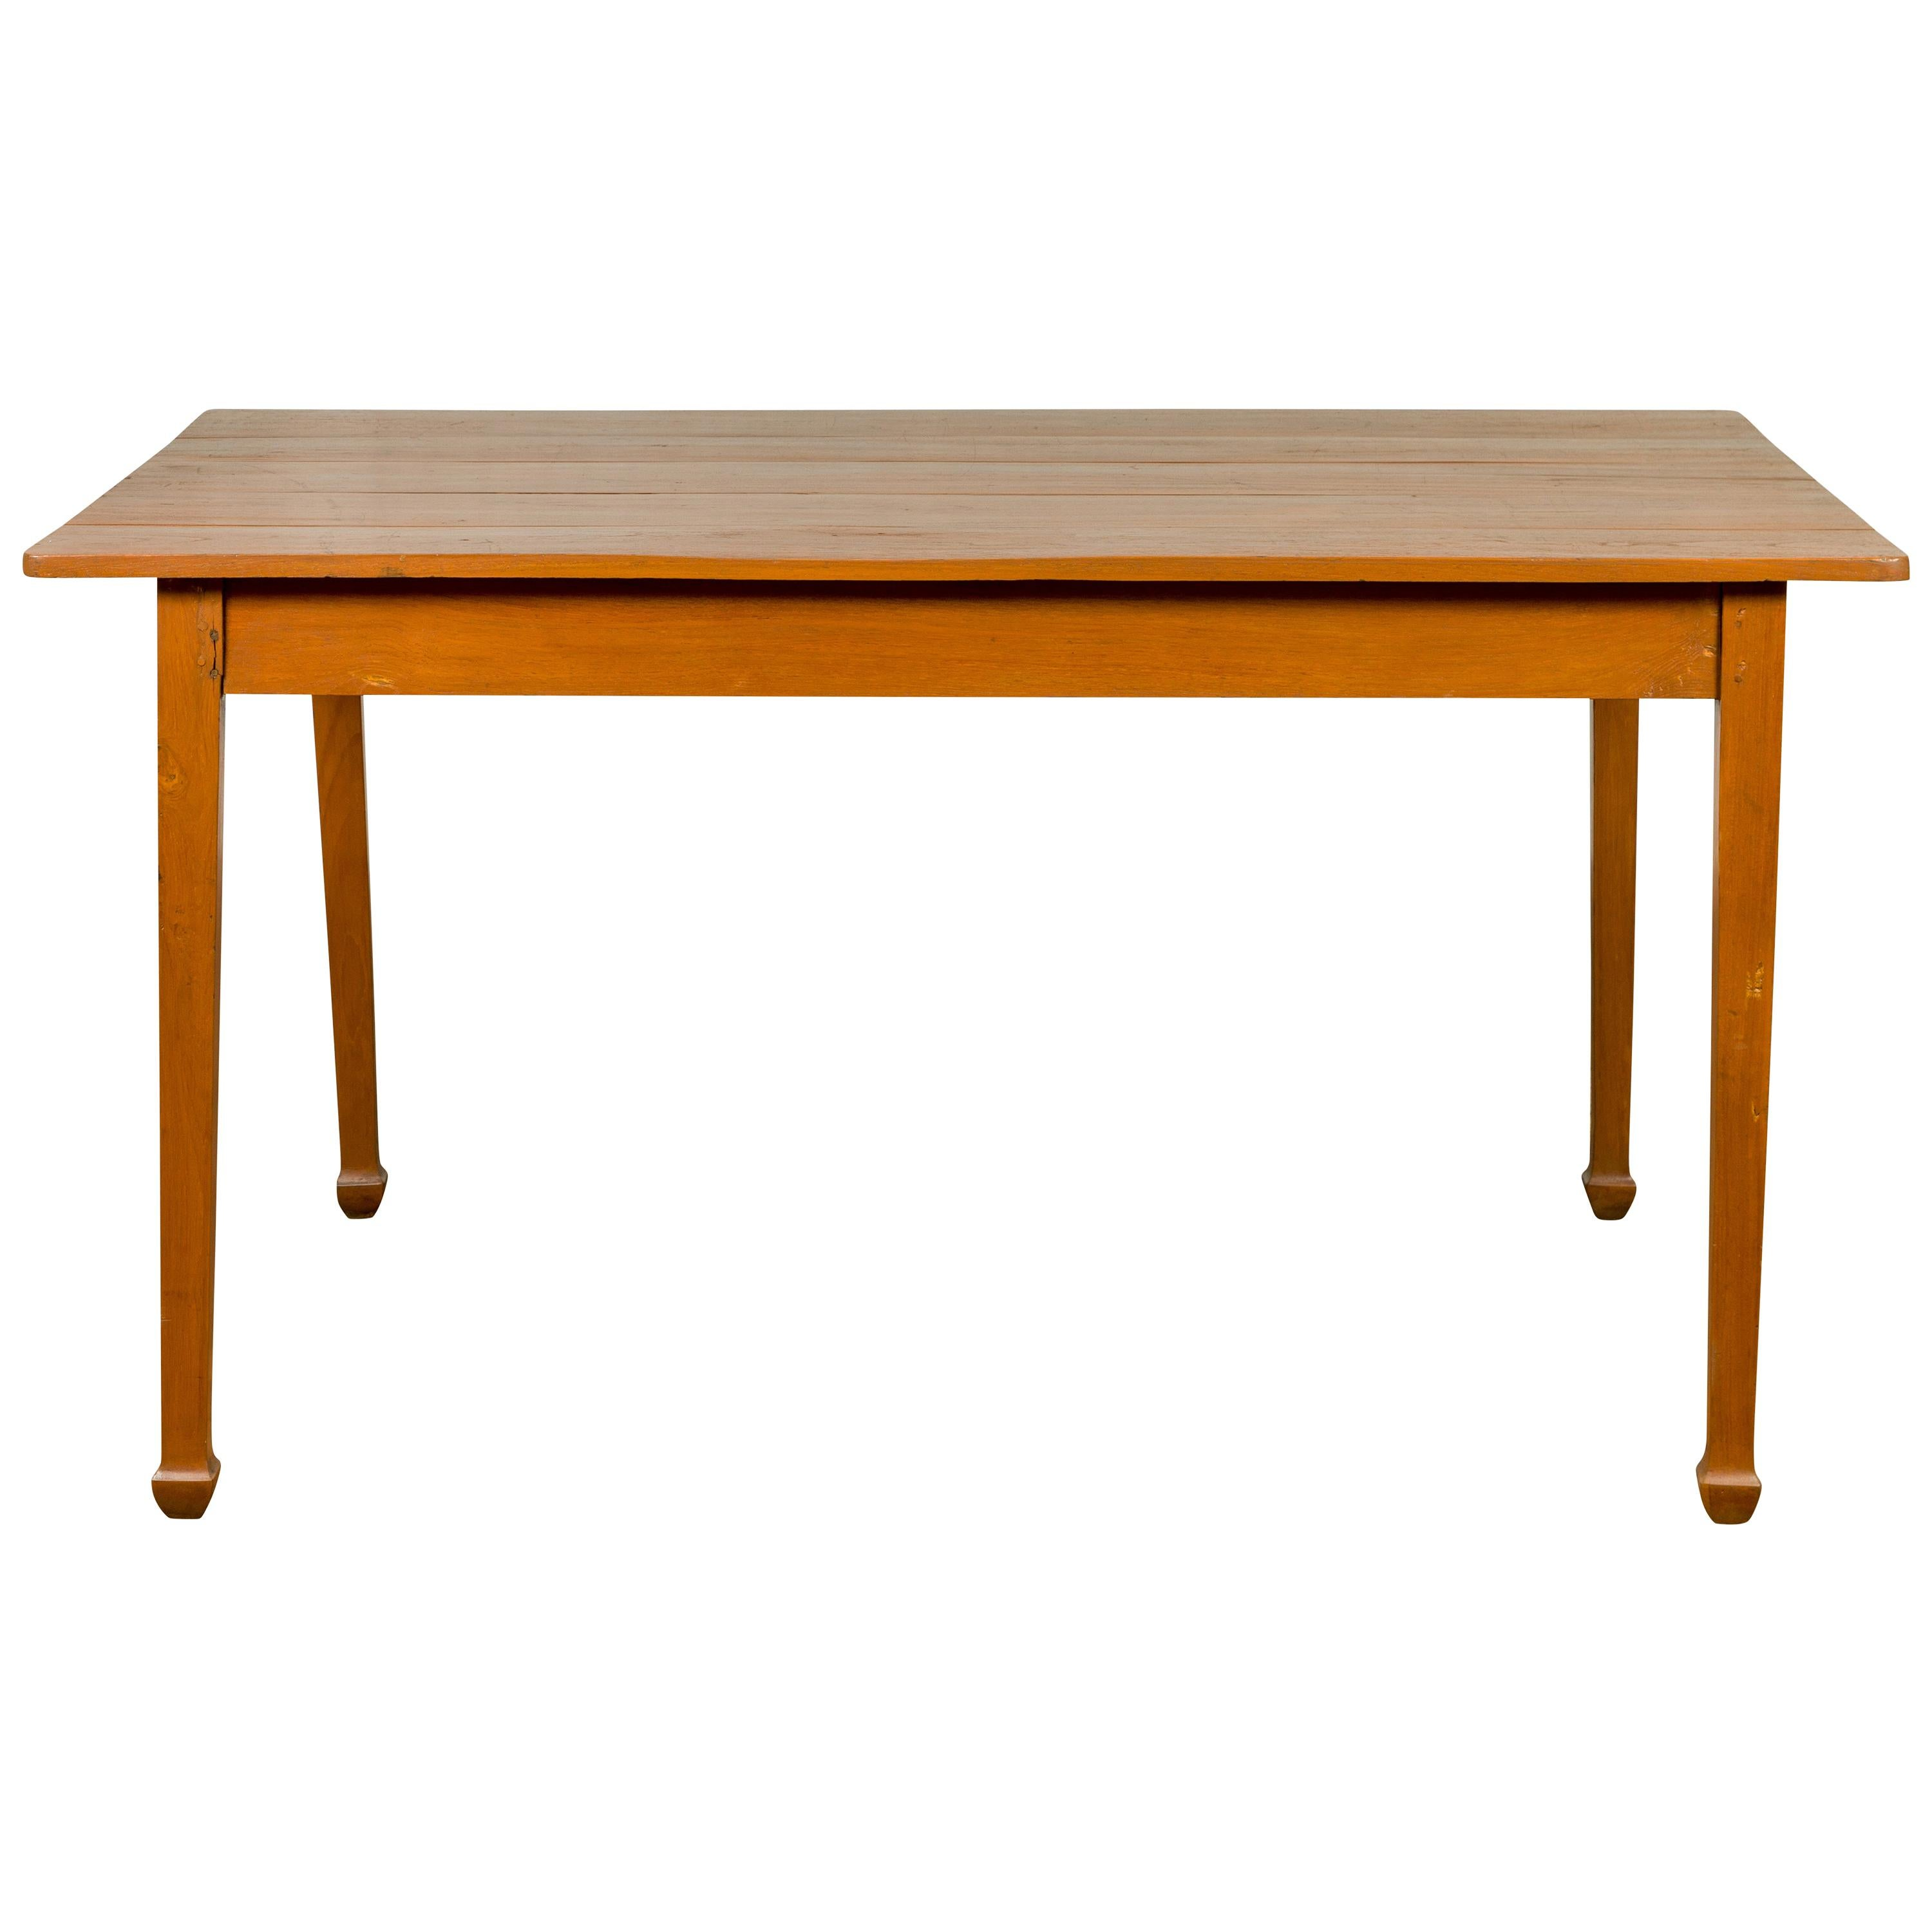 Vintage Chinese Dining Table with Simple Classical Design and Spade Feet